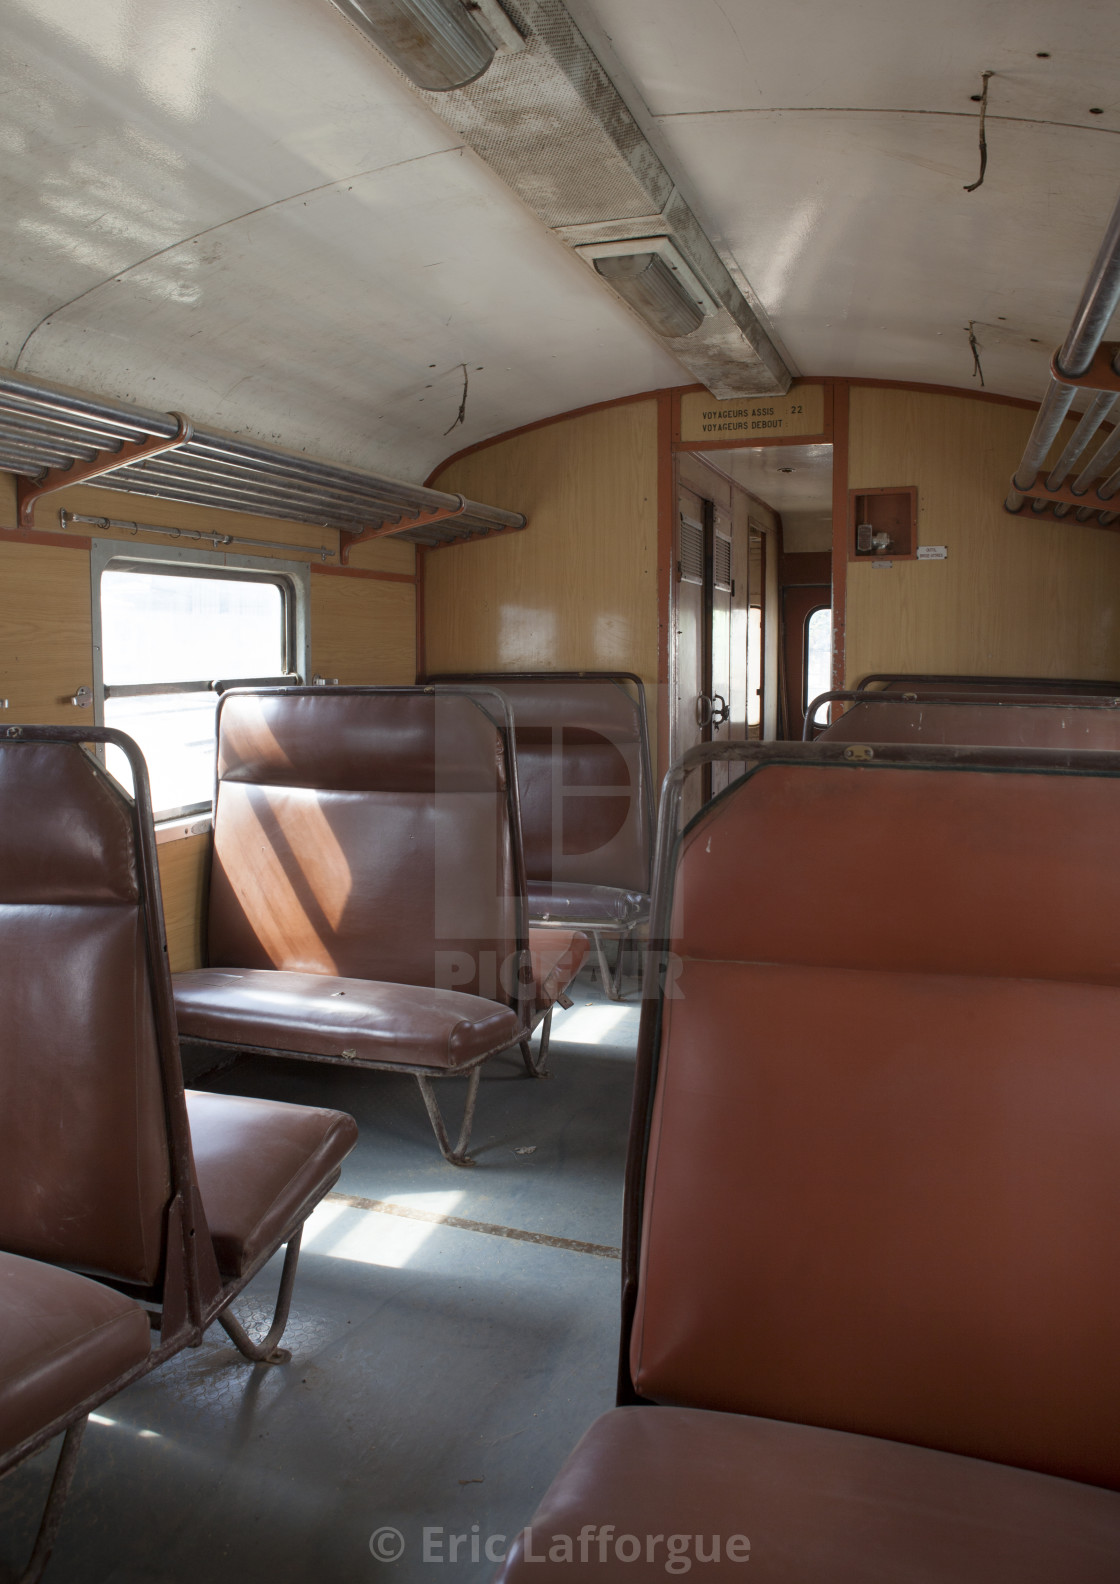 Inside Djibouti Addis Ababa Old Train Second Class, Dire